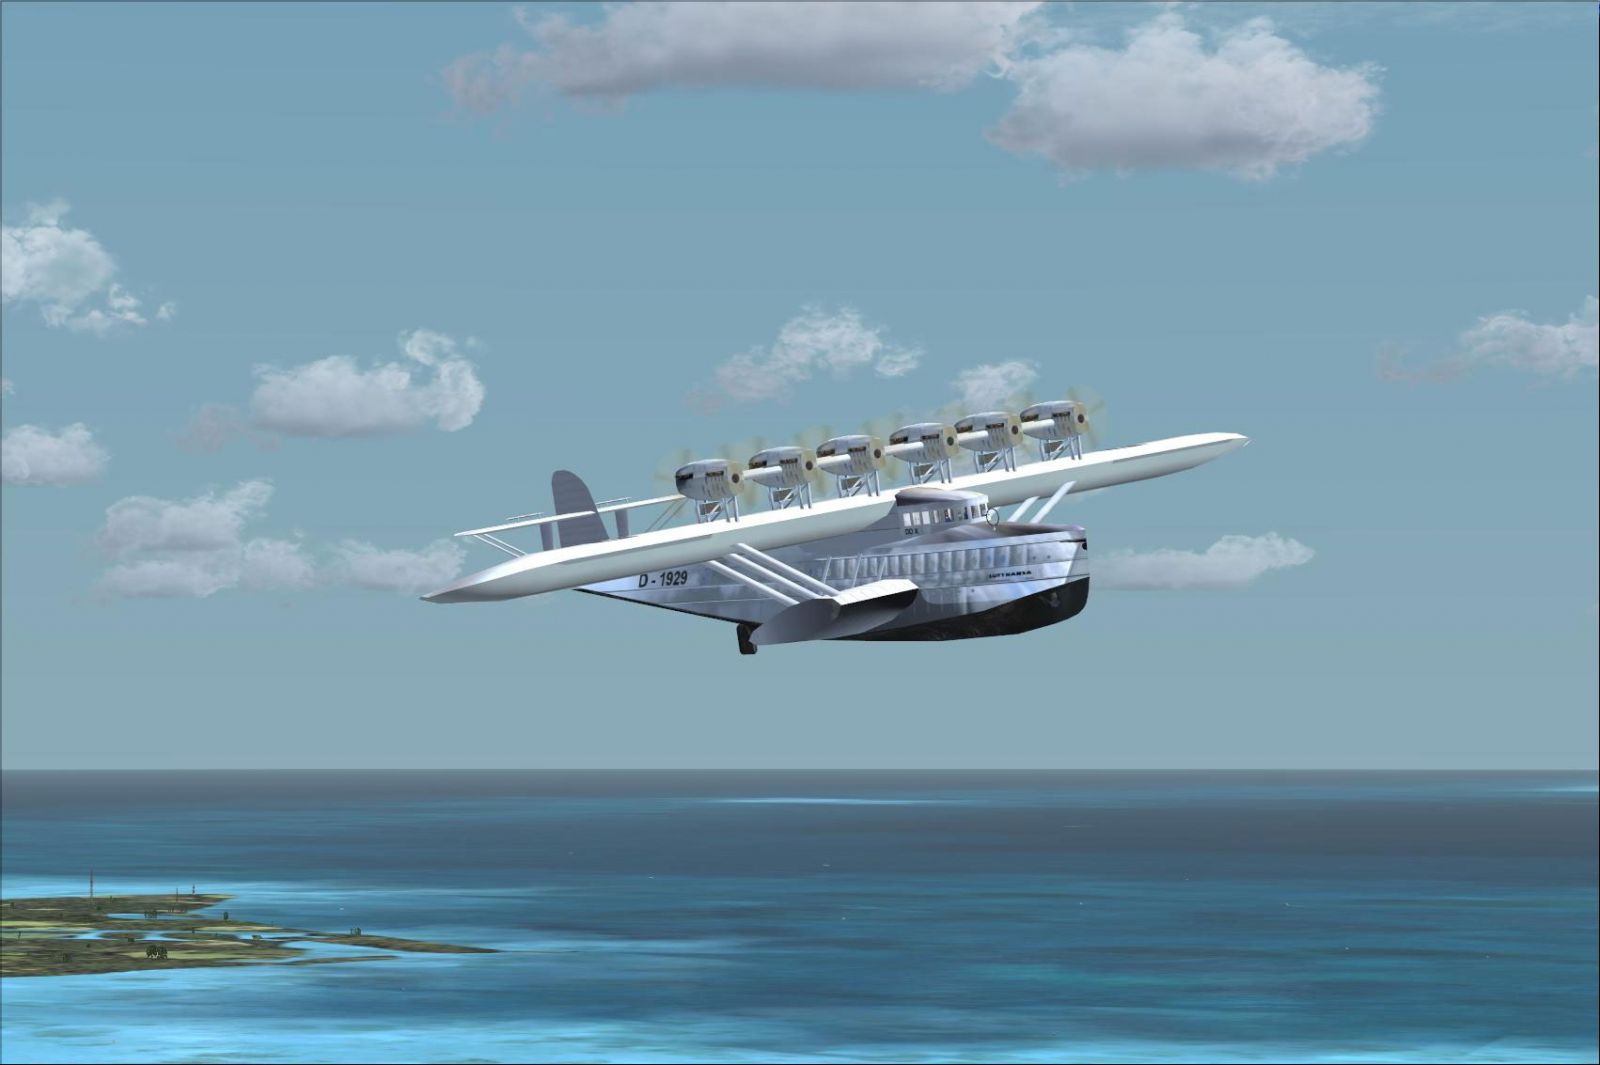 plane flying with Fsx Dornier Do X on Dumbo  1941 as well 2011 also Elon Musk Announces Daring Spacex Dragon Flight Beyond The Moon With 2 Private Astronauts In 2018 together with 3311704940 also 70800 New Release 1 200 If200 Jet X B747 400 Qantas Red.